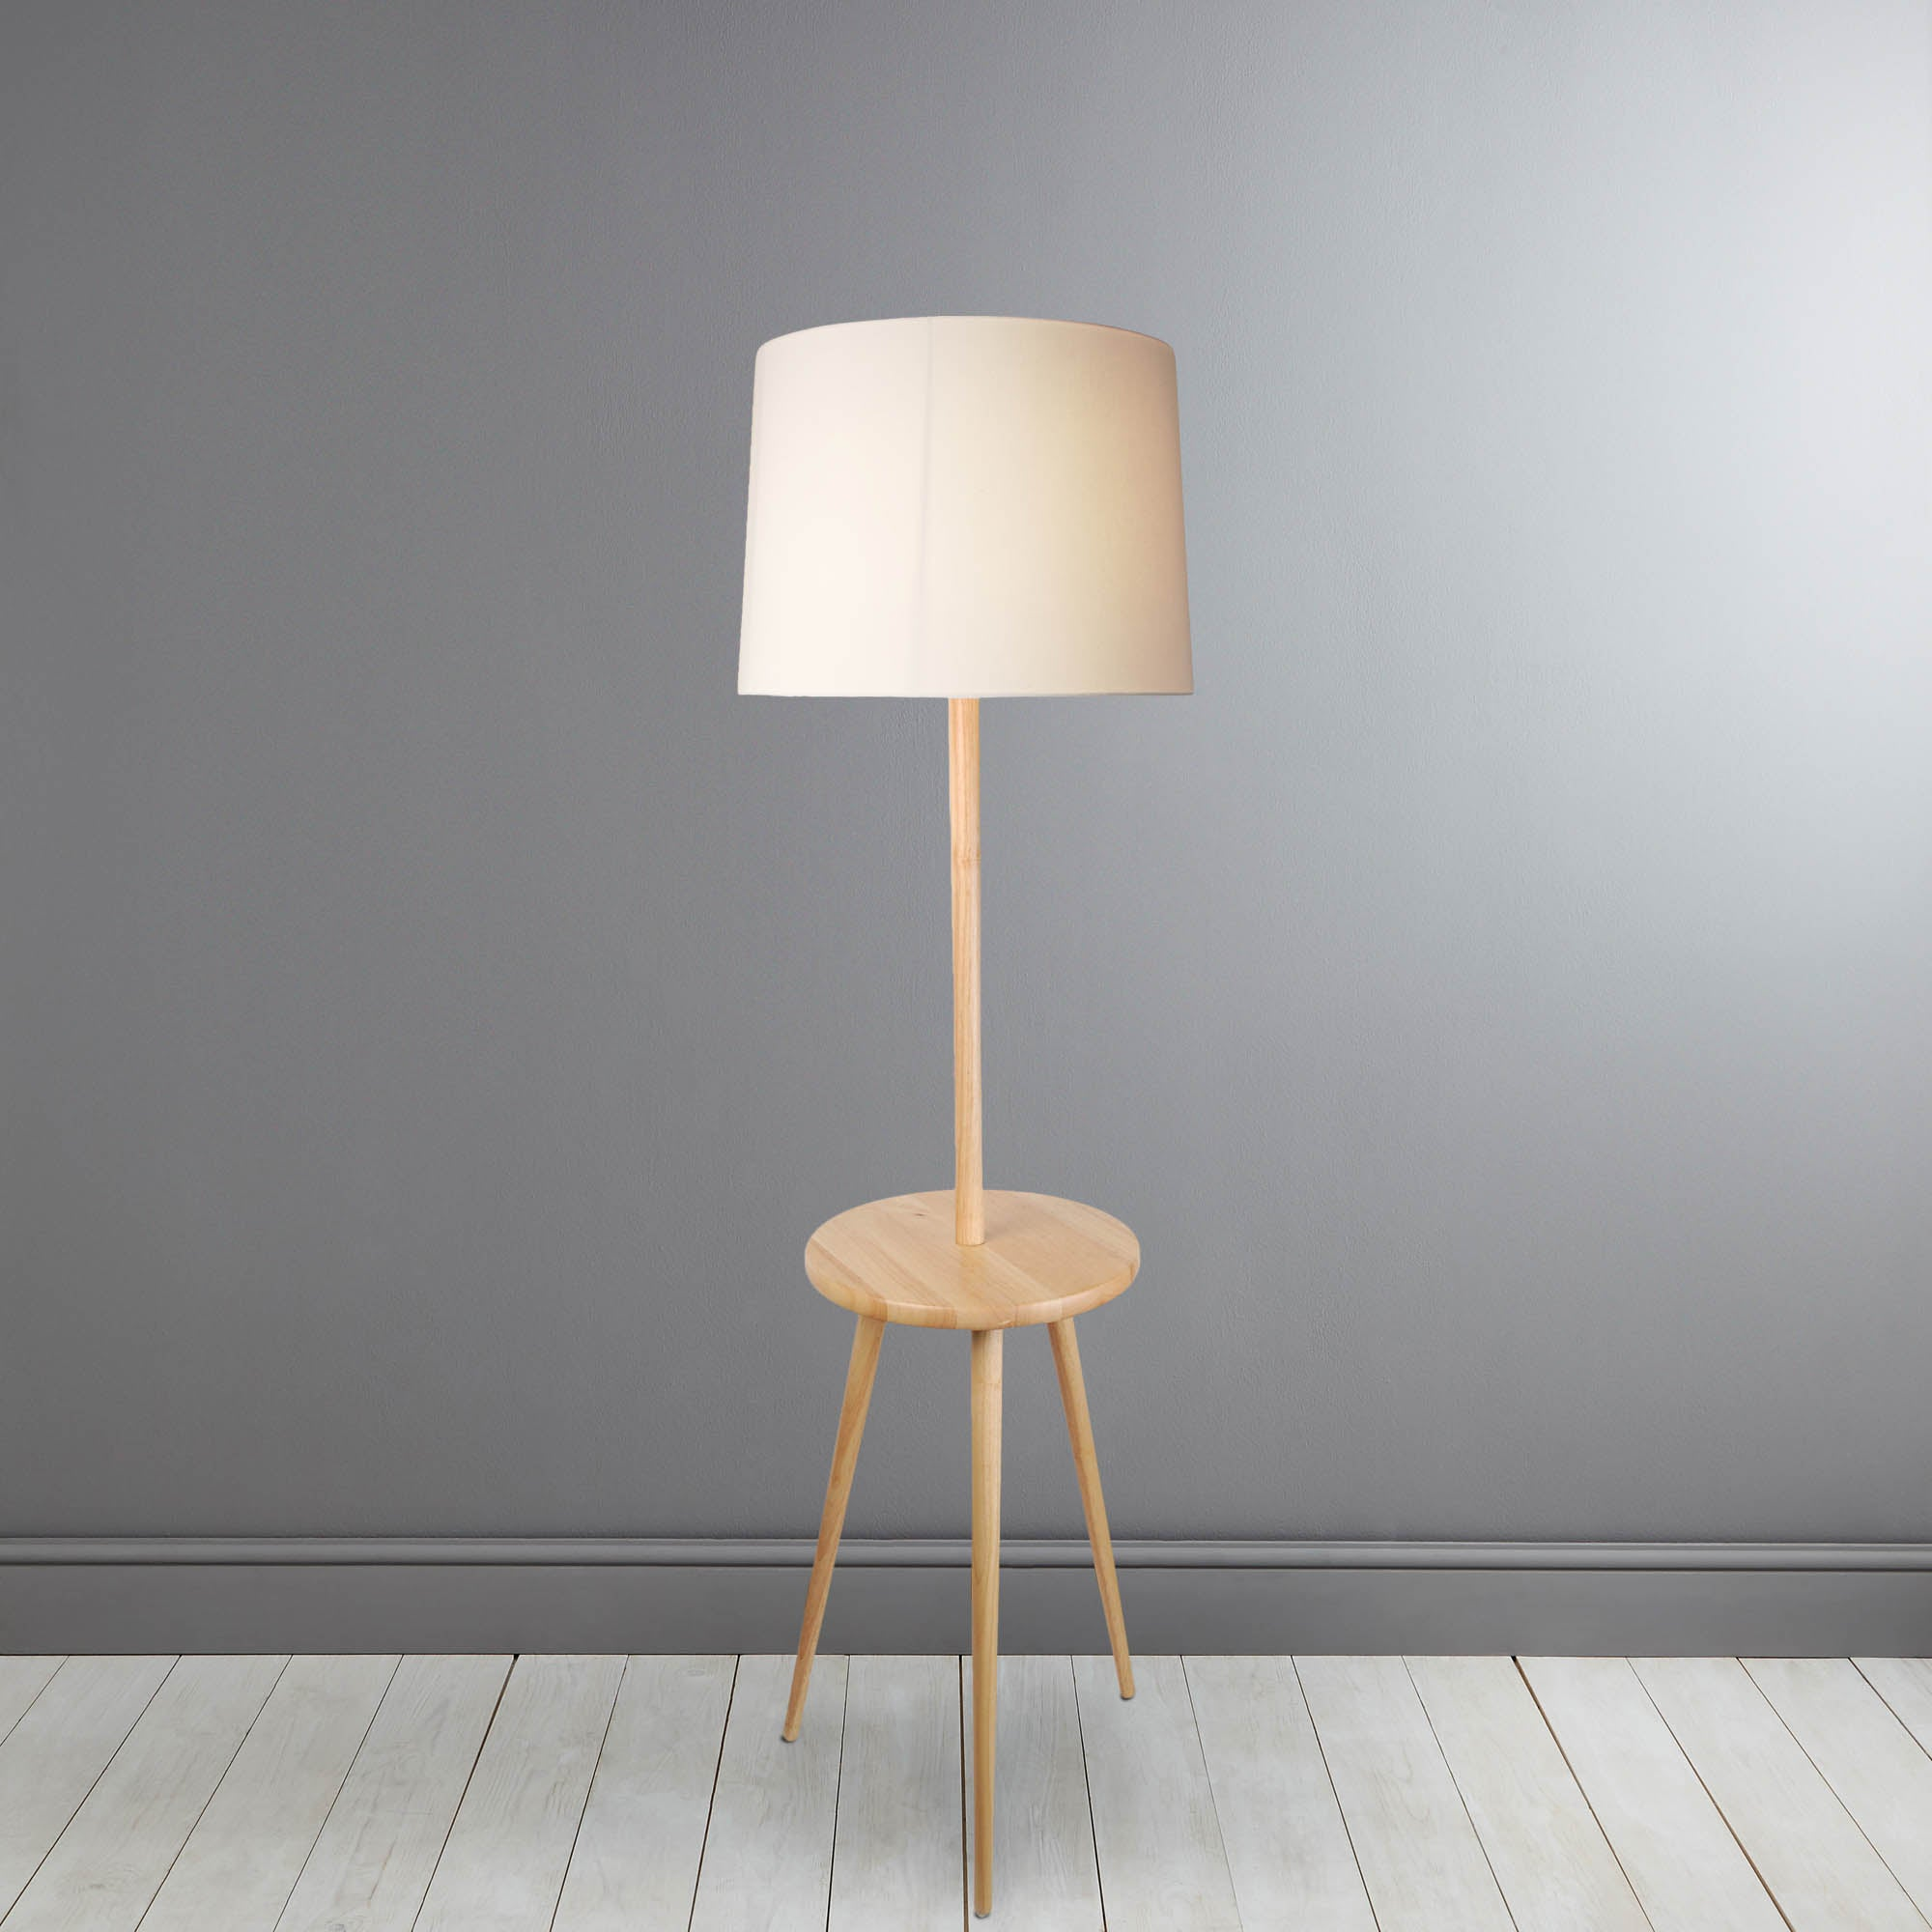 Photo of Elements folsom natural table detail floor lamp natural